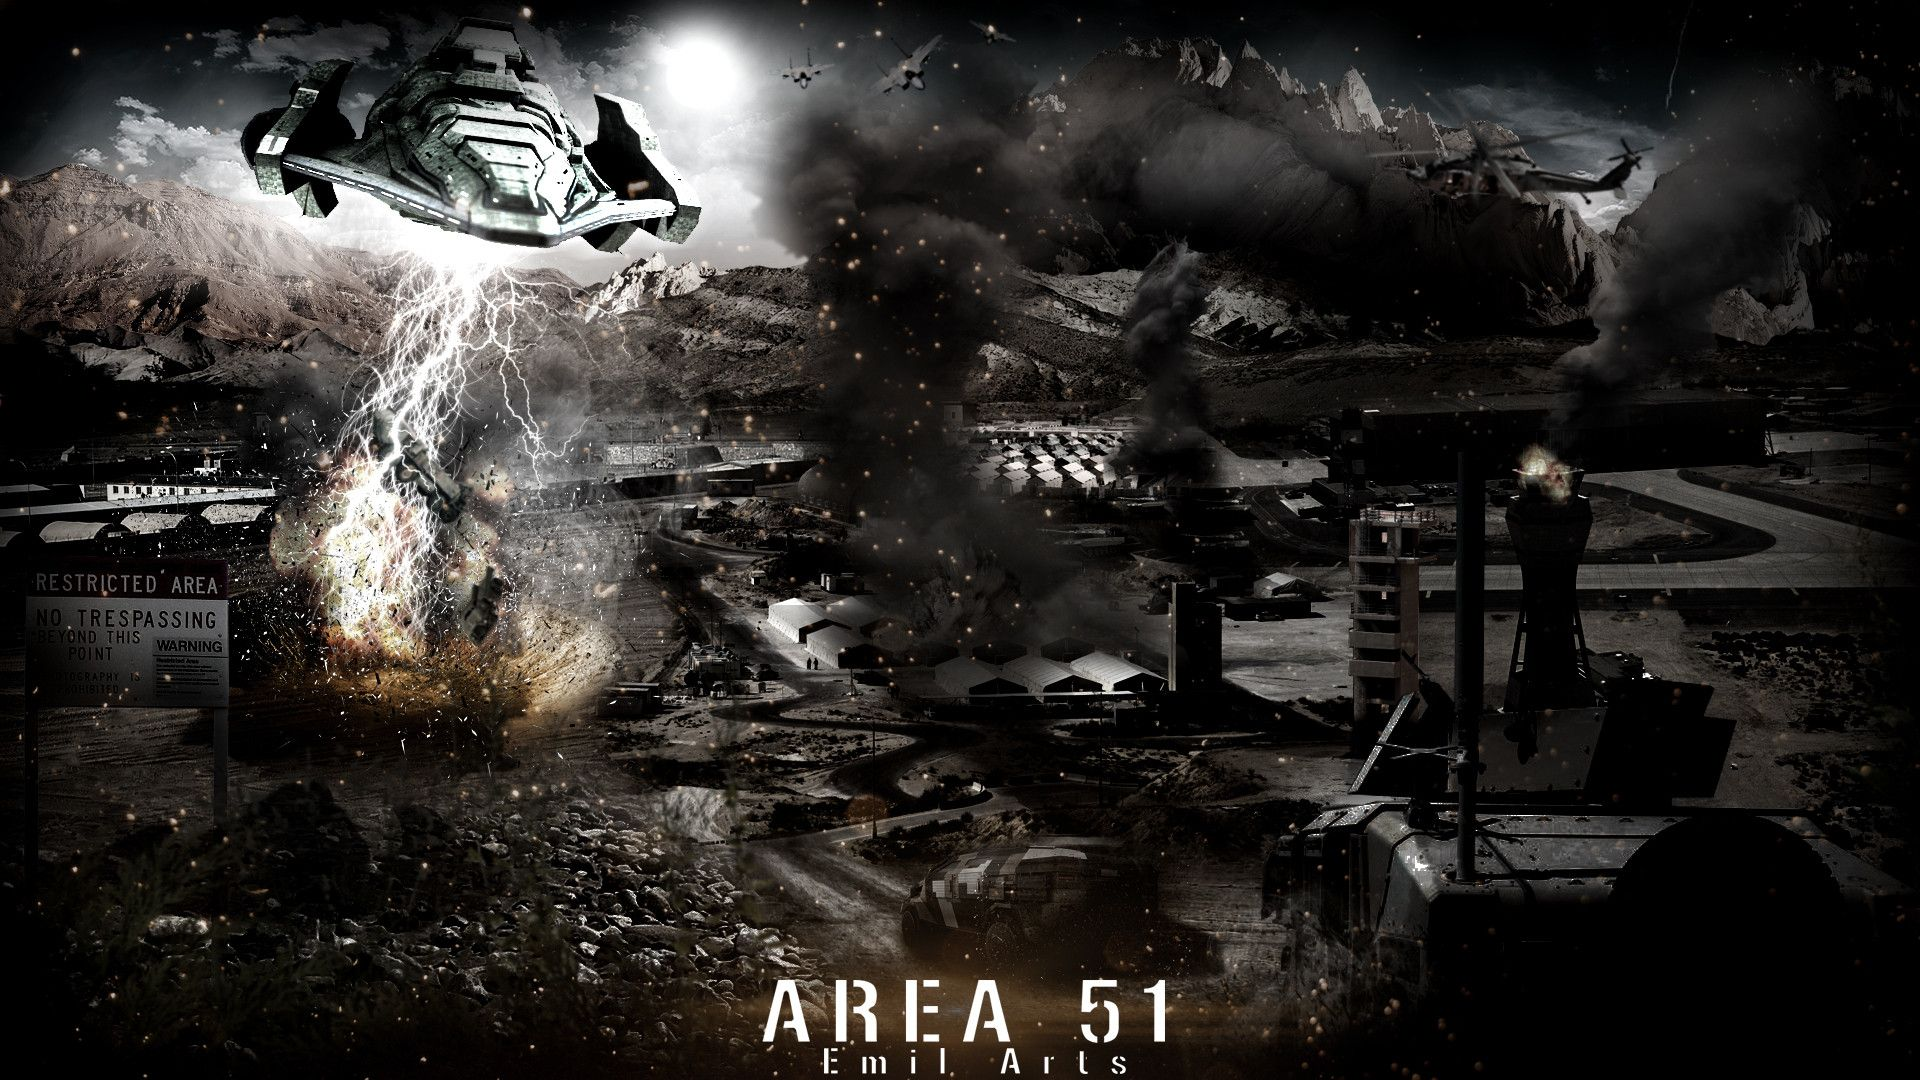 Area 51 Wallpaper - WallpaperSafari